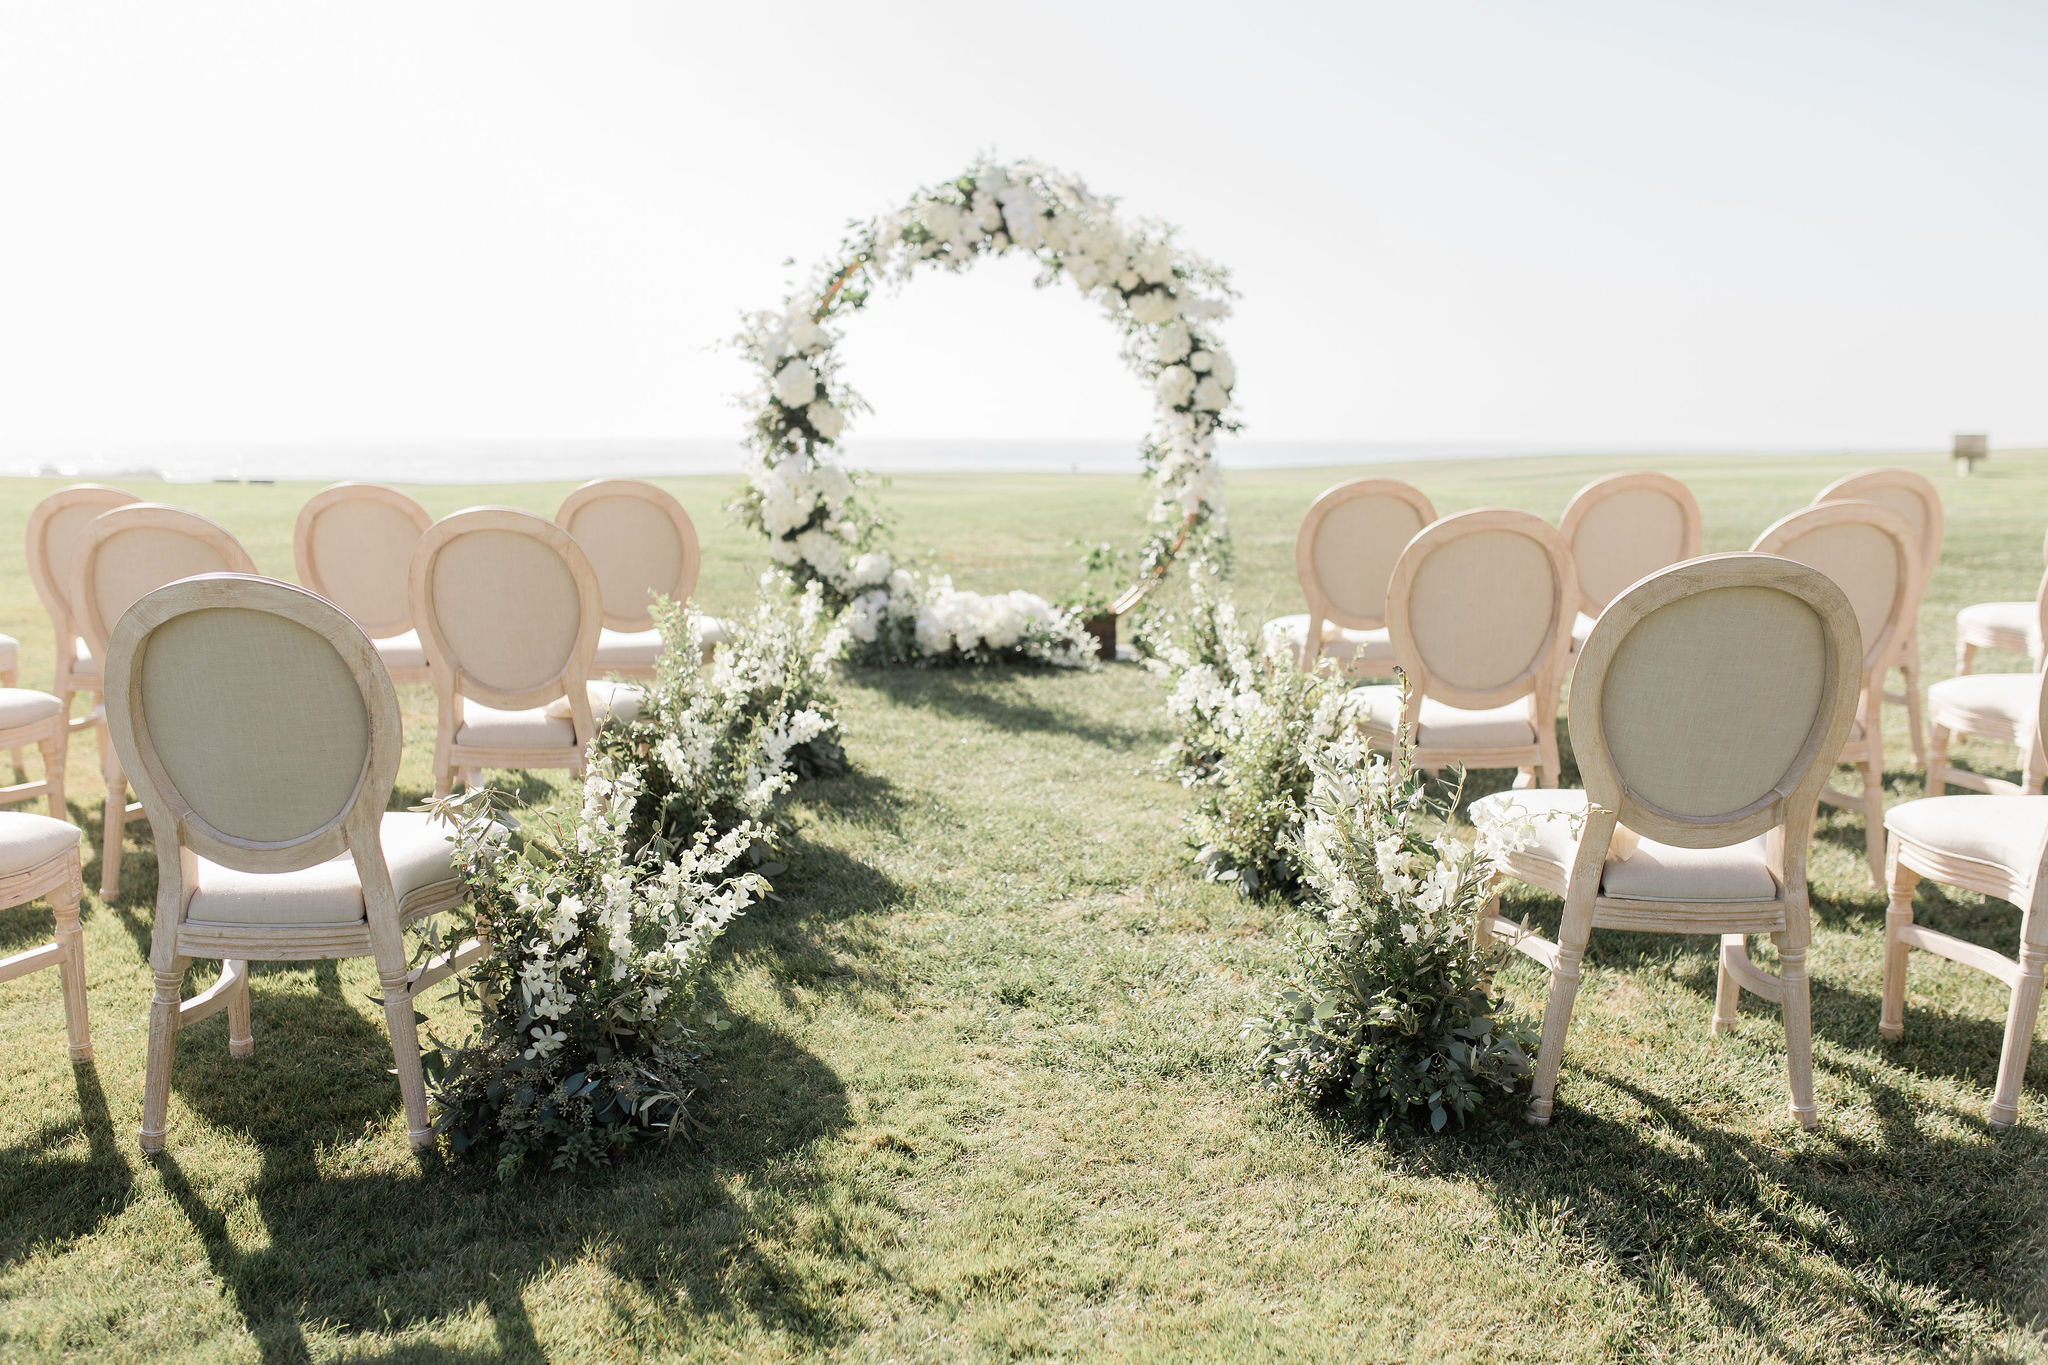 circular floral arch and chair setup outdoors for wedding ceremony